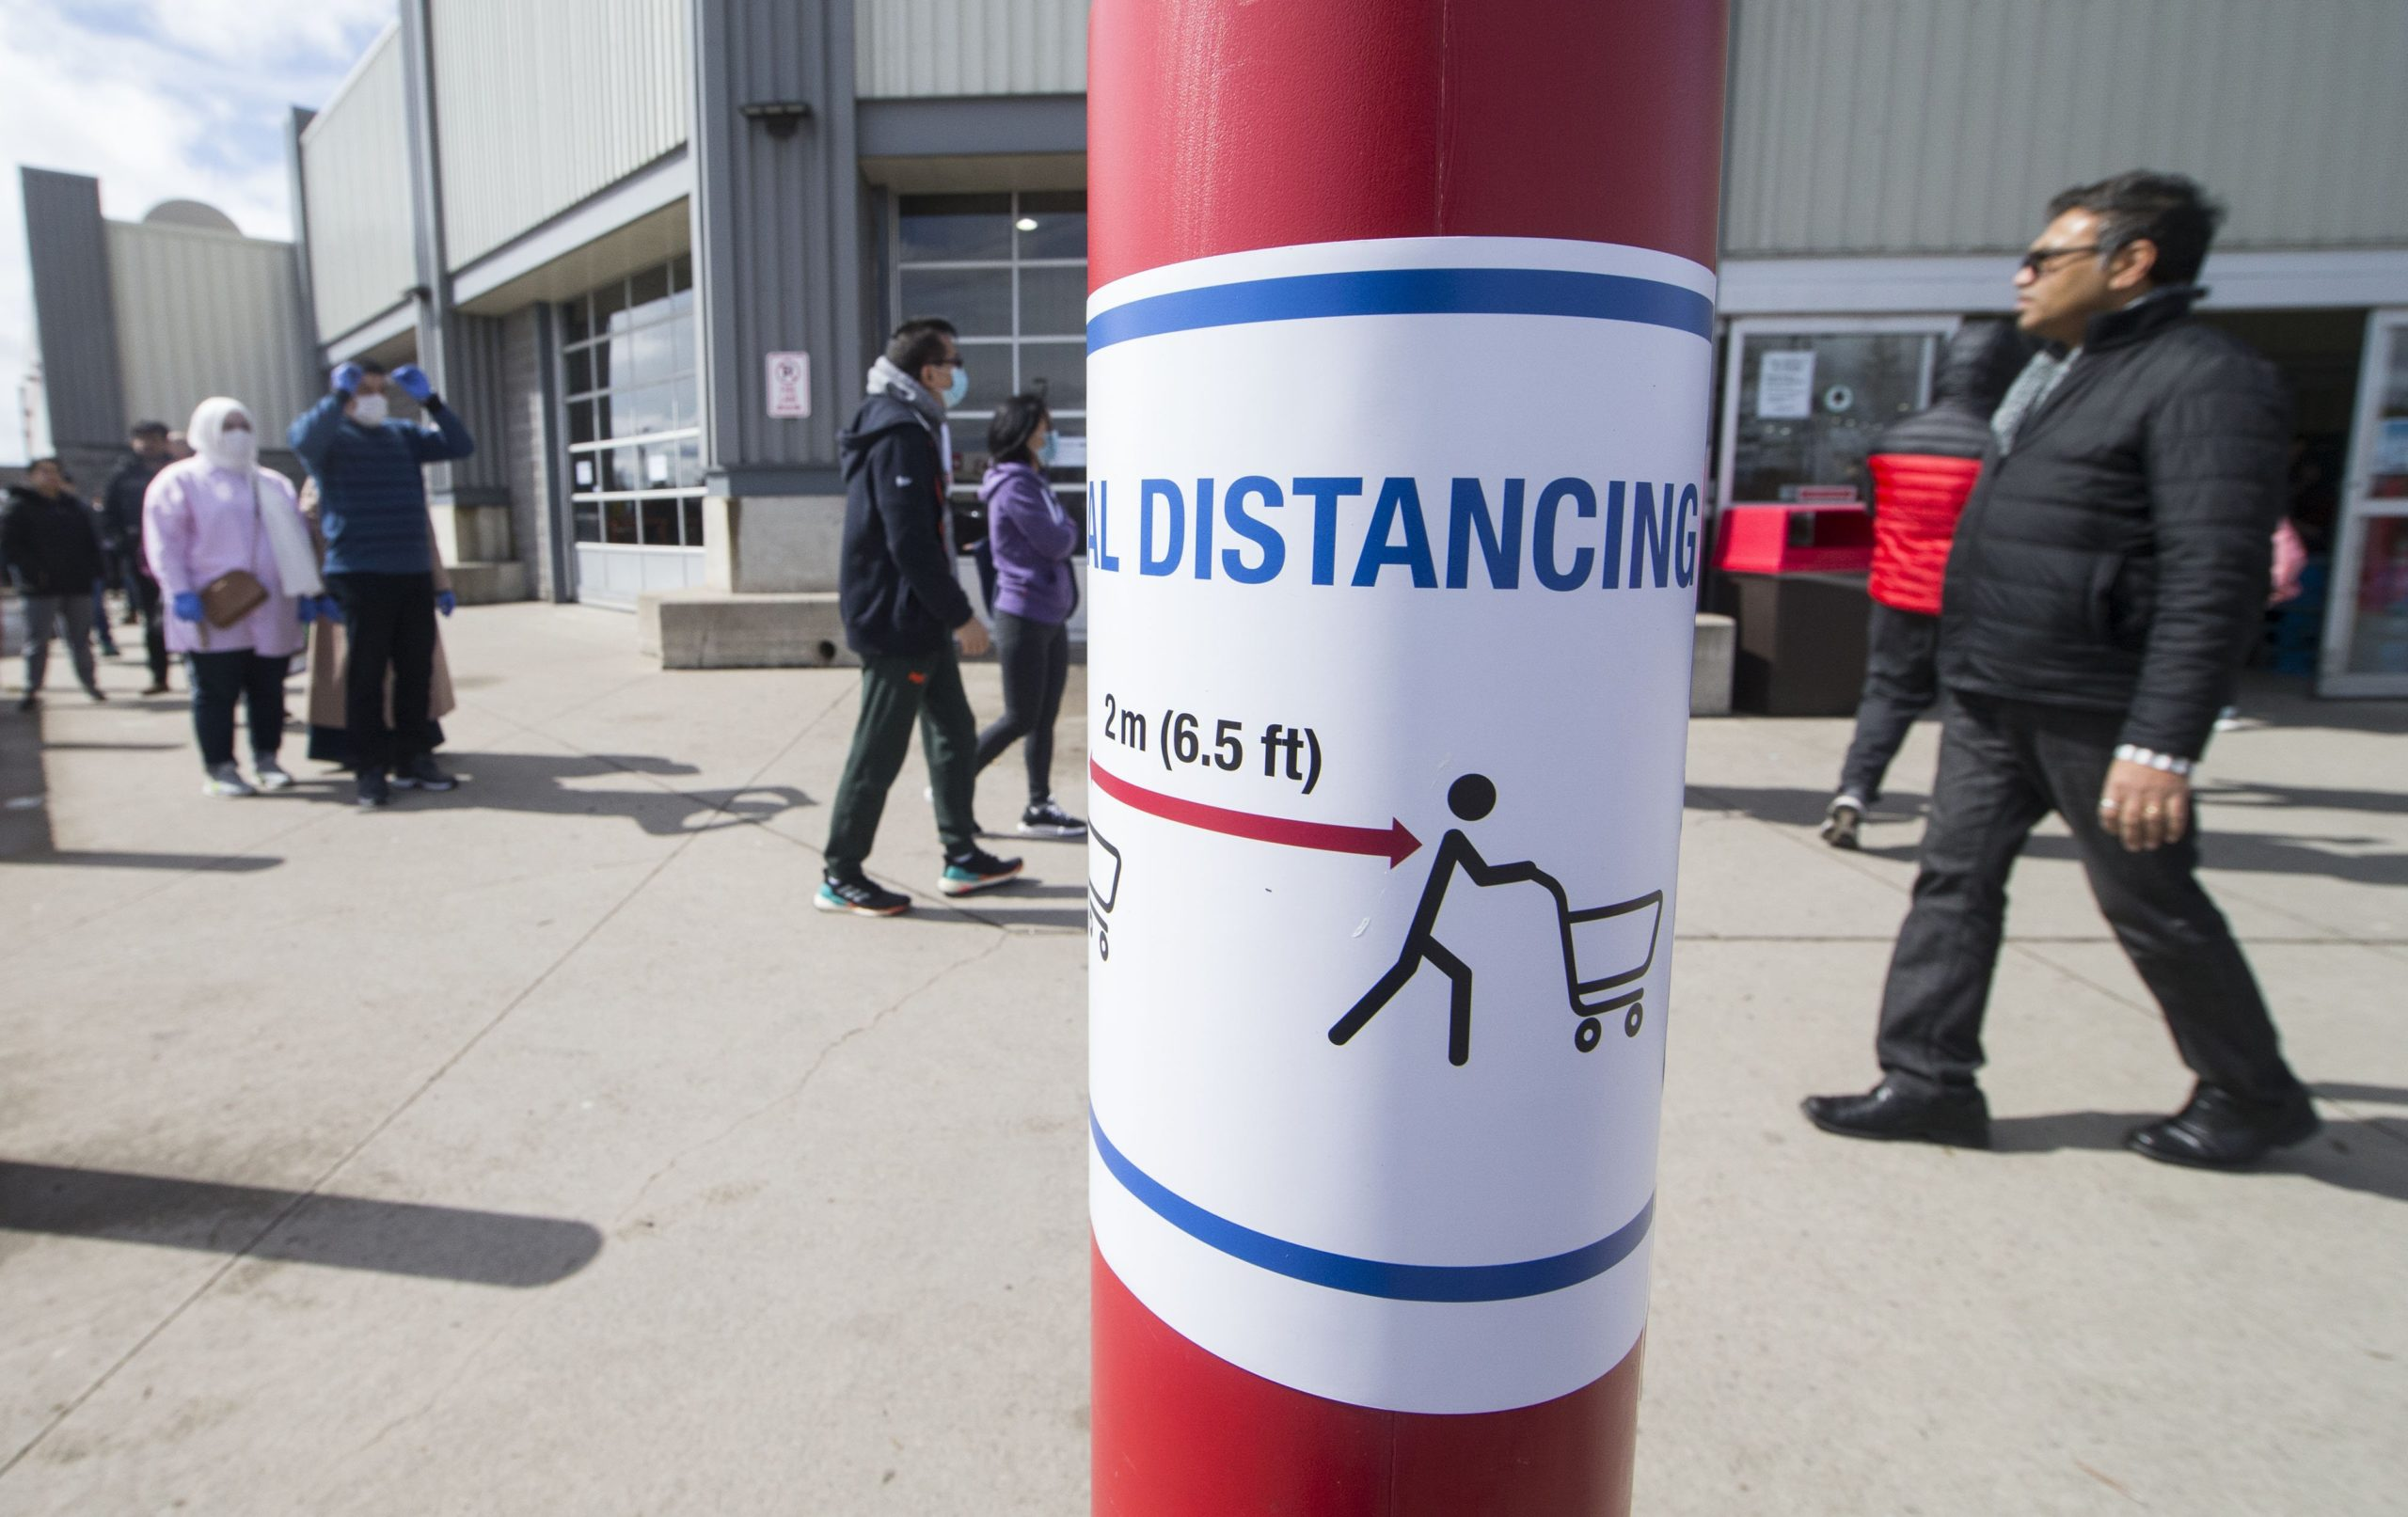 Coronavirus: Provinces say fines, arrests face people who don't distance, self-isolate